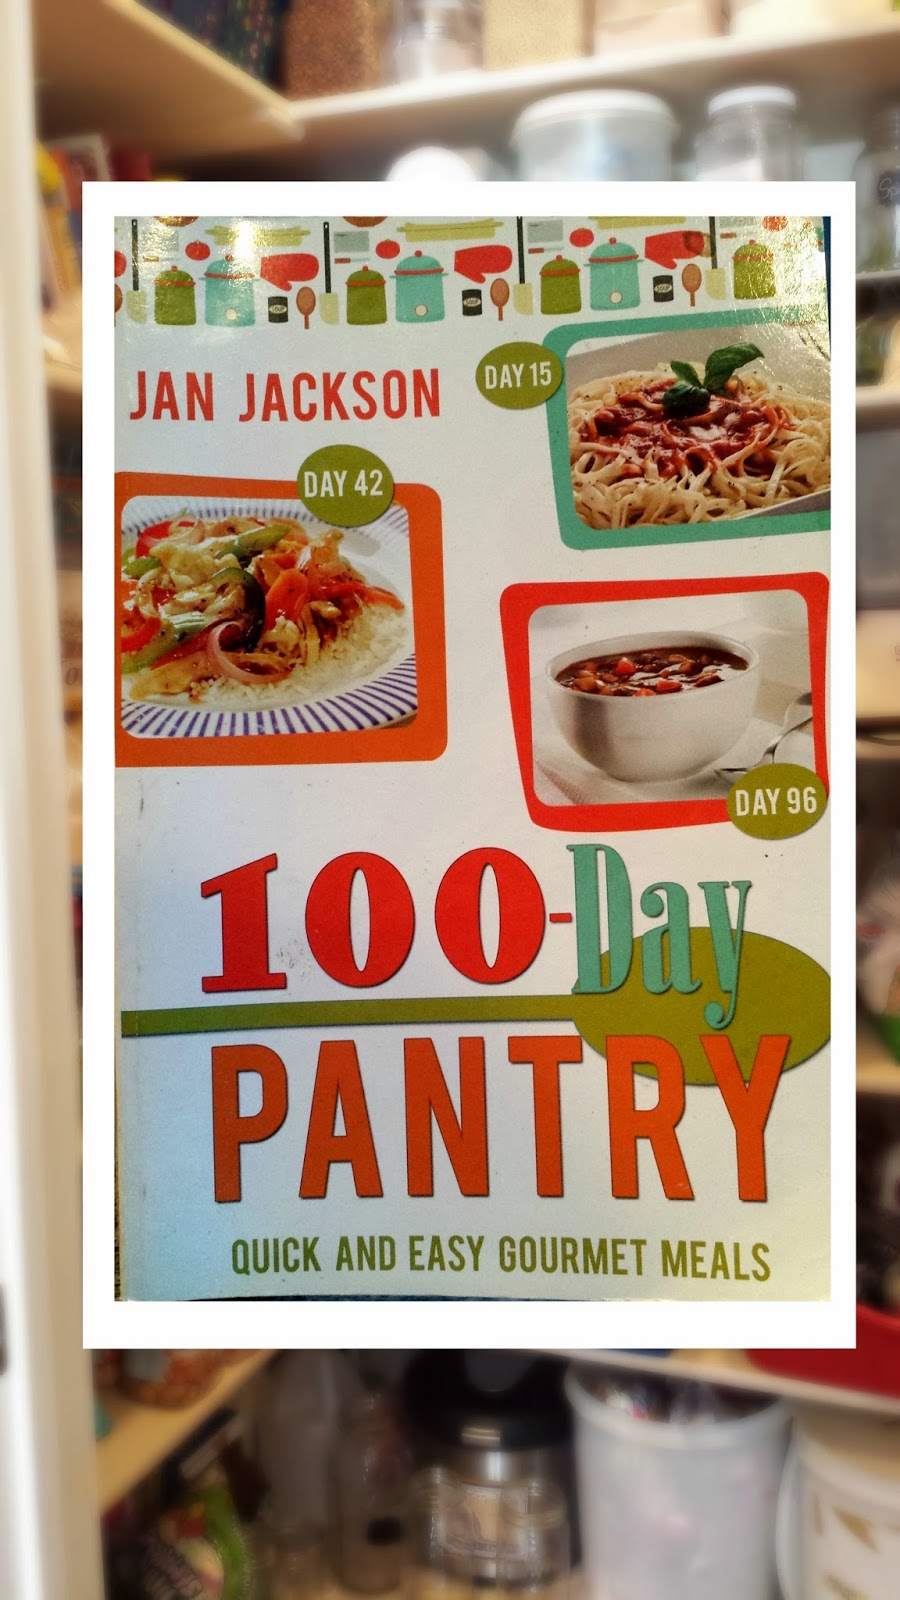 Prepare today 100 day pantry a book review the first sentence of this book totally grabbed my attention an organized approach to having long term food storagei was sold forumfinder Images